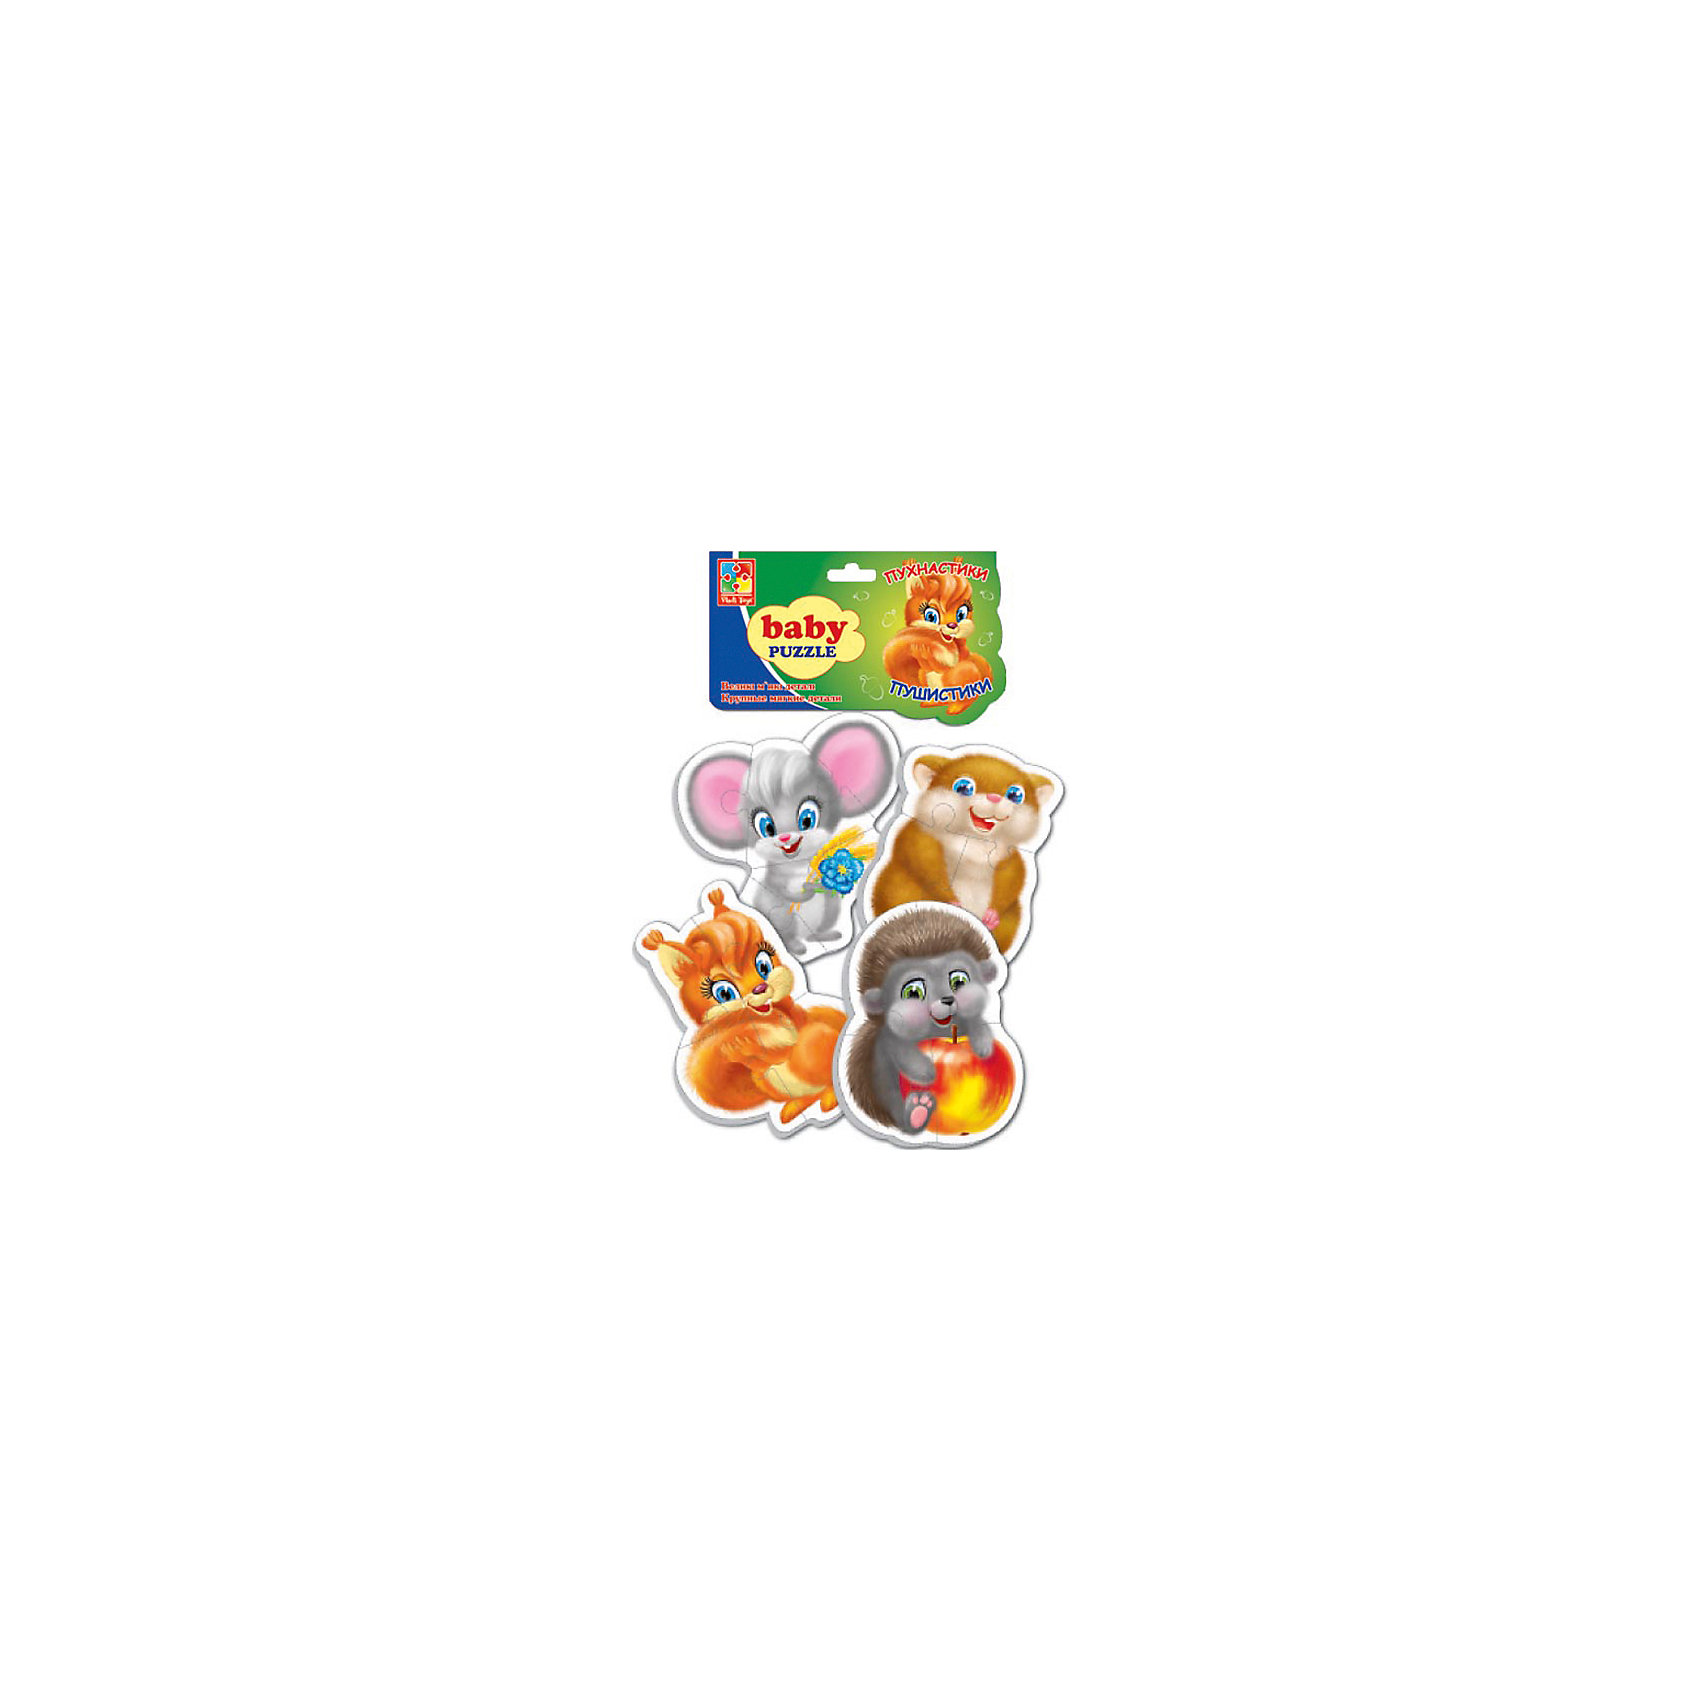 Vladi Toys Мягкие пазлы Пушистики, Vladi Toys пазлы vladi toys пазлы мягкие baby puzzle сказки репка